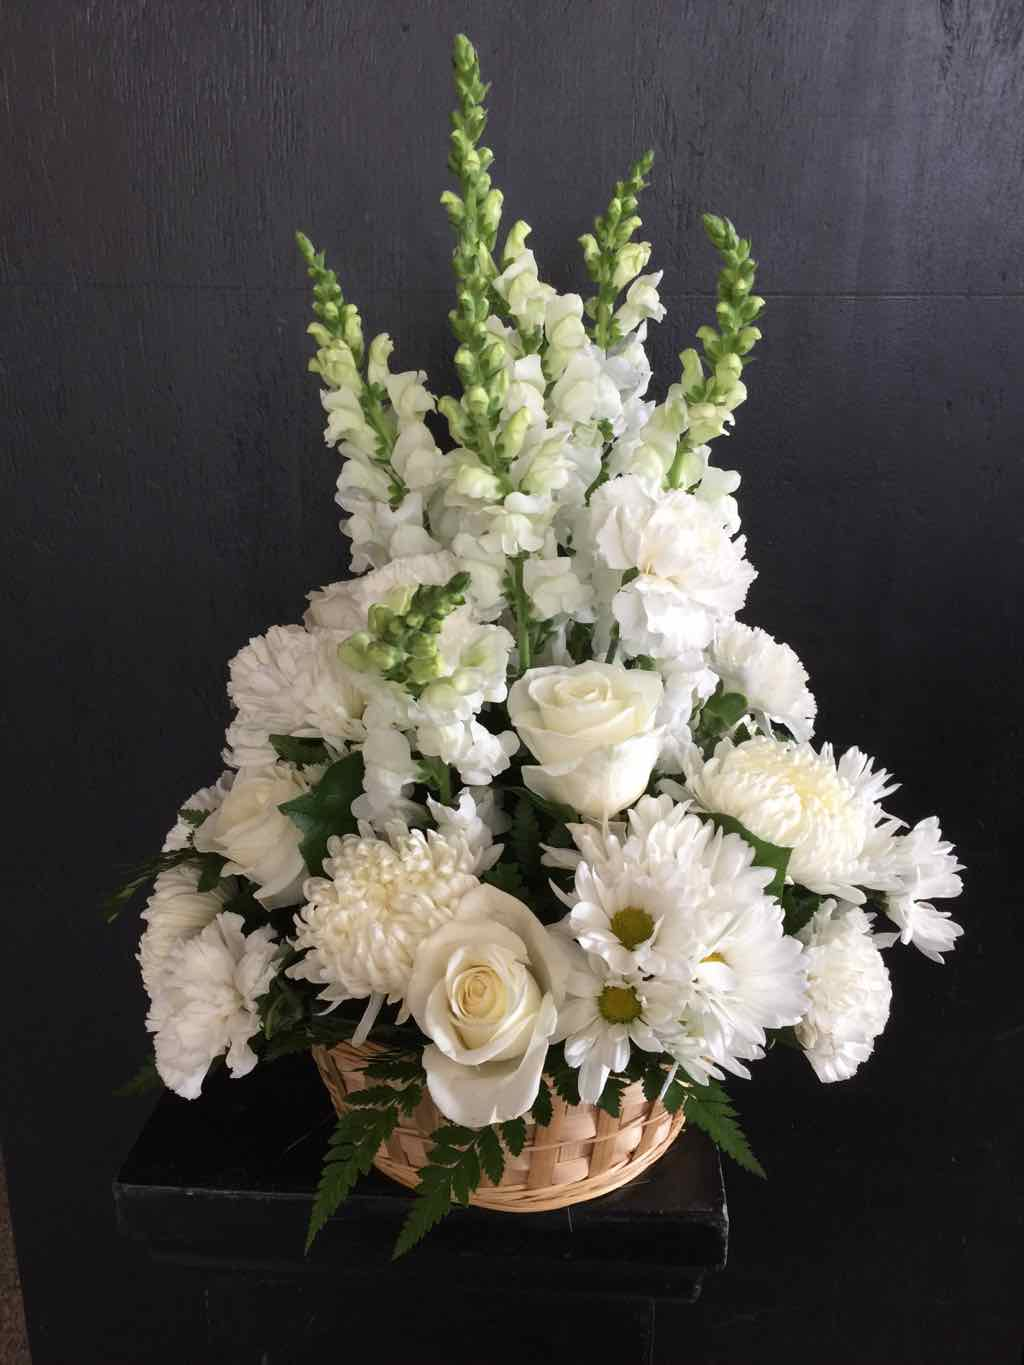 Heartfelt Condolences by Fasan Florist